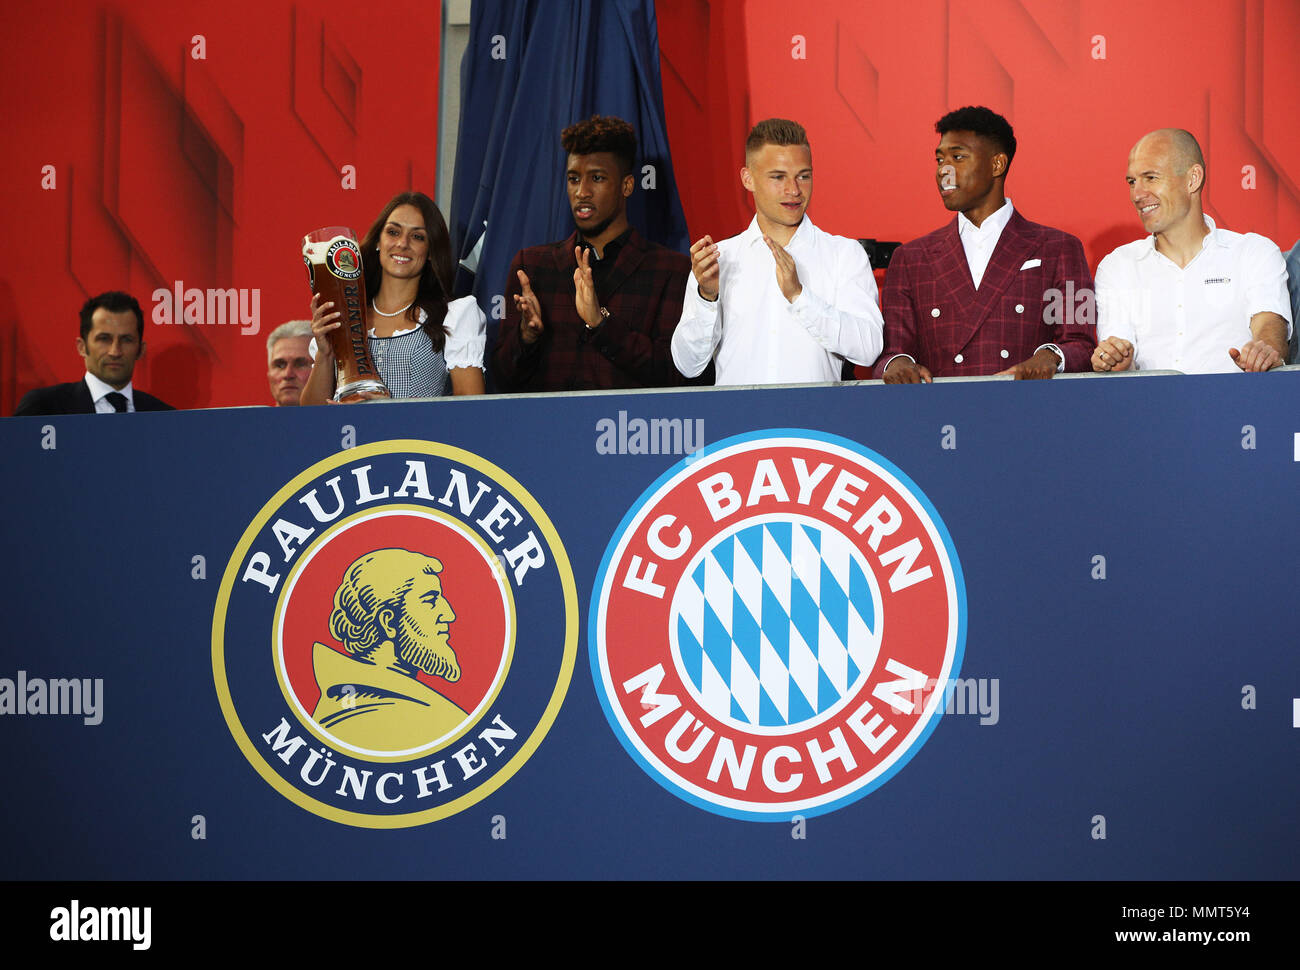 HANDOUT - 12 May 2018, Germany, Munich: Hasan Salihamidzic (L-R), sporting director of FC Bayern Munich, coach Jupp Heynckes and the players Corentin Tolisso, Joshua Kimmich, David Alaba and Arjen Robben celebrate winning the championship together with the fans at the Paulaner beer garden at the Nockherberg. Earlier though, a home defeat dampened the joy over the 28th championship title. Photo: Adam Pretty/FCB/Getty Images /dpa - ATTENTION: editorial use only and only if the credit mentioned above is referenced in full Credit: dpa picture alliance/Alamy Live News Stock Photo